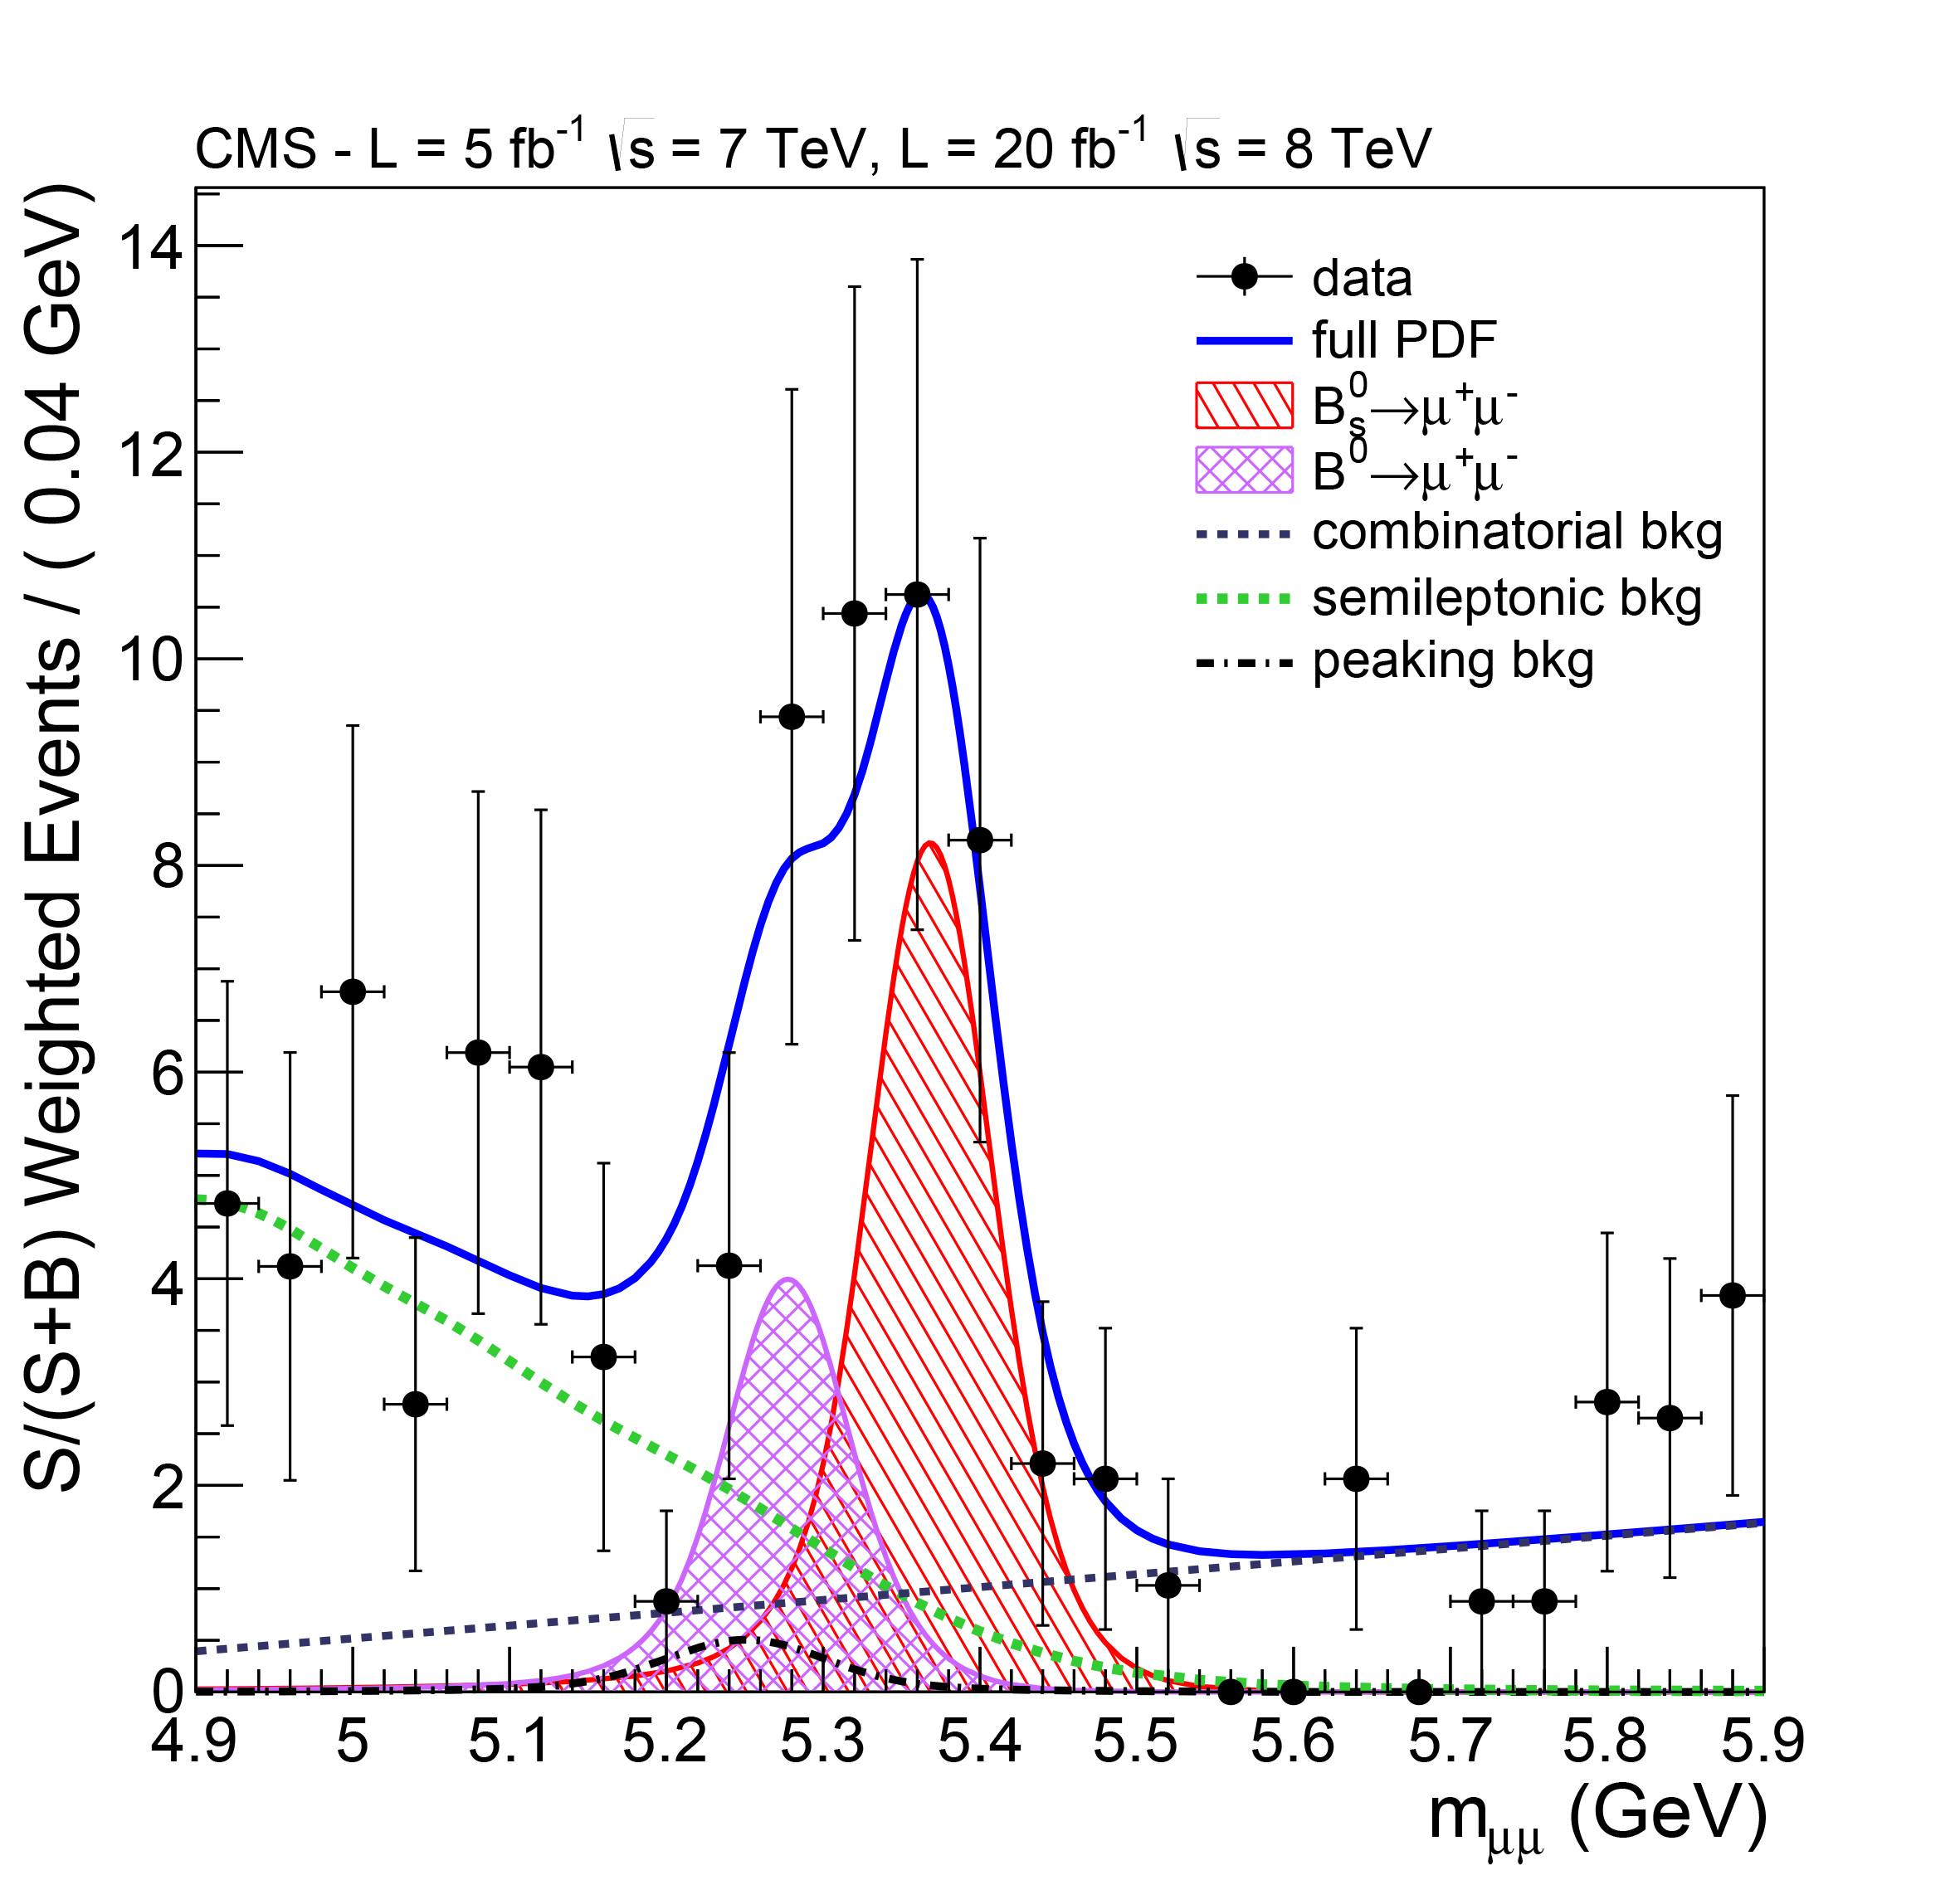 A <q>mass spectrum</q> in which the result of the search for the decay of the B<sub>s</sub> meson into two muons is plotted. The blue line shows the number of muon pairs observed for different values of their energy. If the two muons were formed during the decay of one particle and were the only decay products, this corresponds to the mass of the decayed particle. The green and black dotted lines correspond to the background, i.e. the muon pairs that just  happen to look as if they stem from the same decay. For the value that corresponds to the mass of the B<sub>s</sub> meson, considerably more matching muon pairs are visible, which confirms that one has actually observed the decay of the  B<sub>s</sub> meson into two muons. There is also an increased number for the mass of the <q>usual</q> B mesons, although it is still too small to be considered as proof.